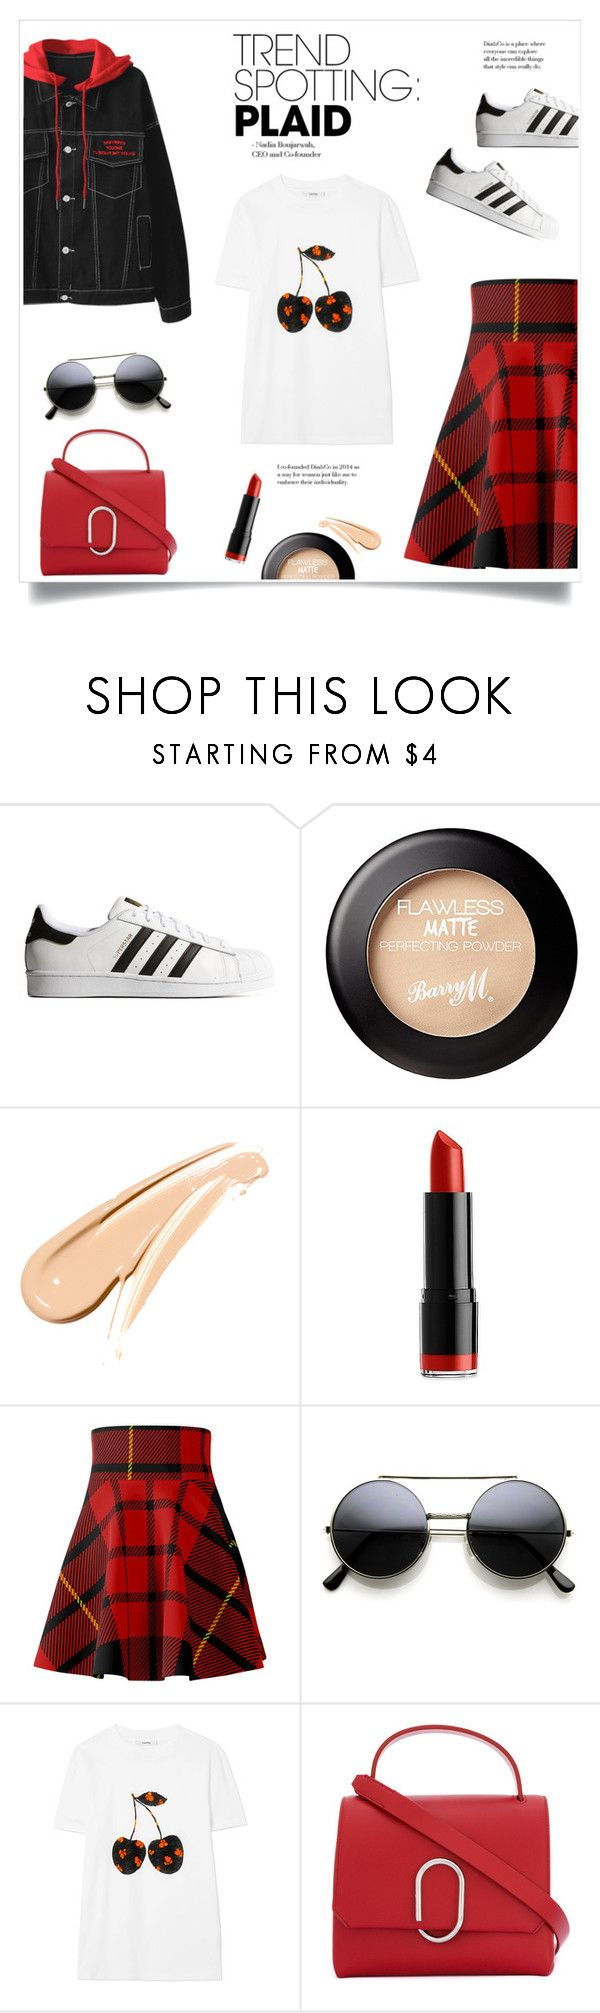 """Trend Spotting!"" by diane1234 ❤ liked on Polyvore featuring adidas Originals, NYX, Alexander McQueen, Ganni, 3.1 Phillip Lim, contestentry, topfashionproducts and NYFWPlaid"